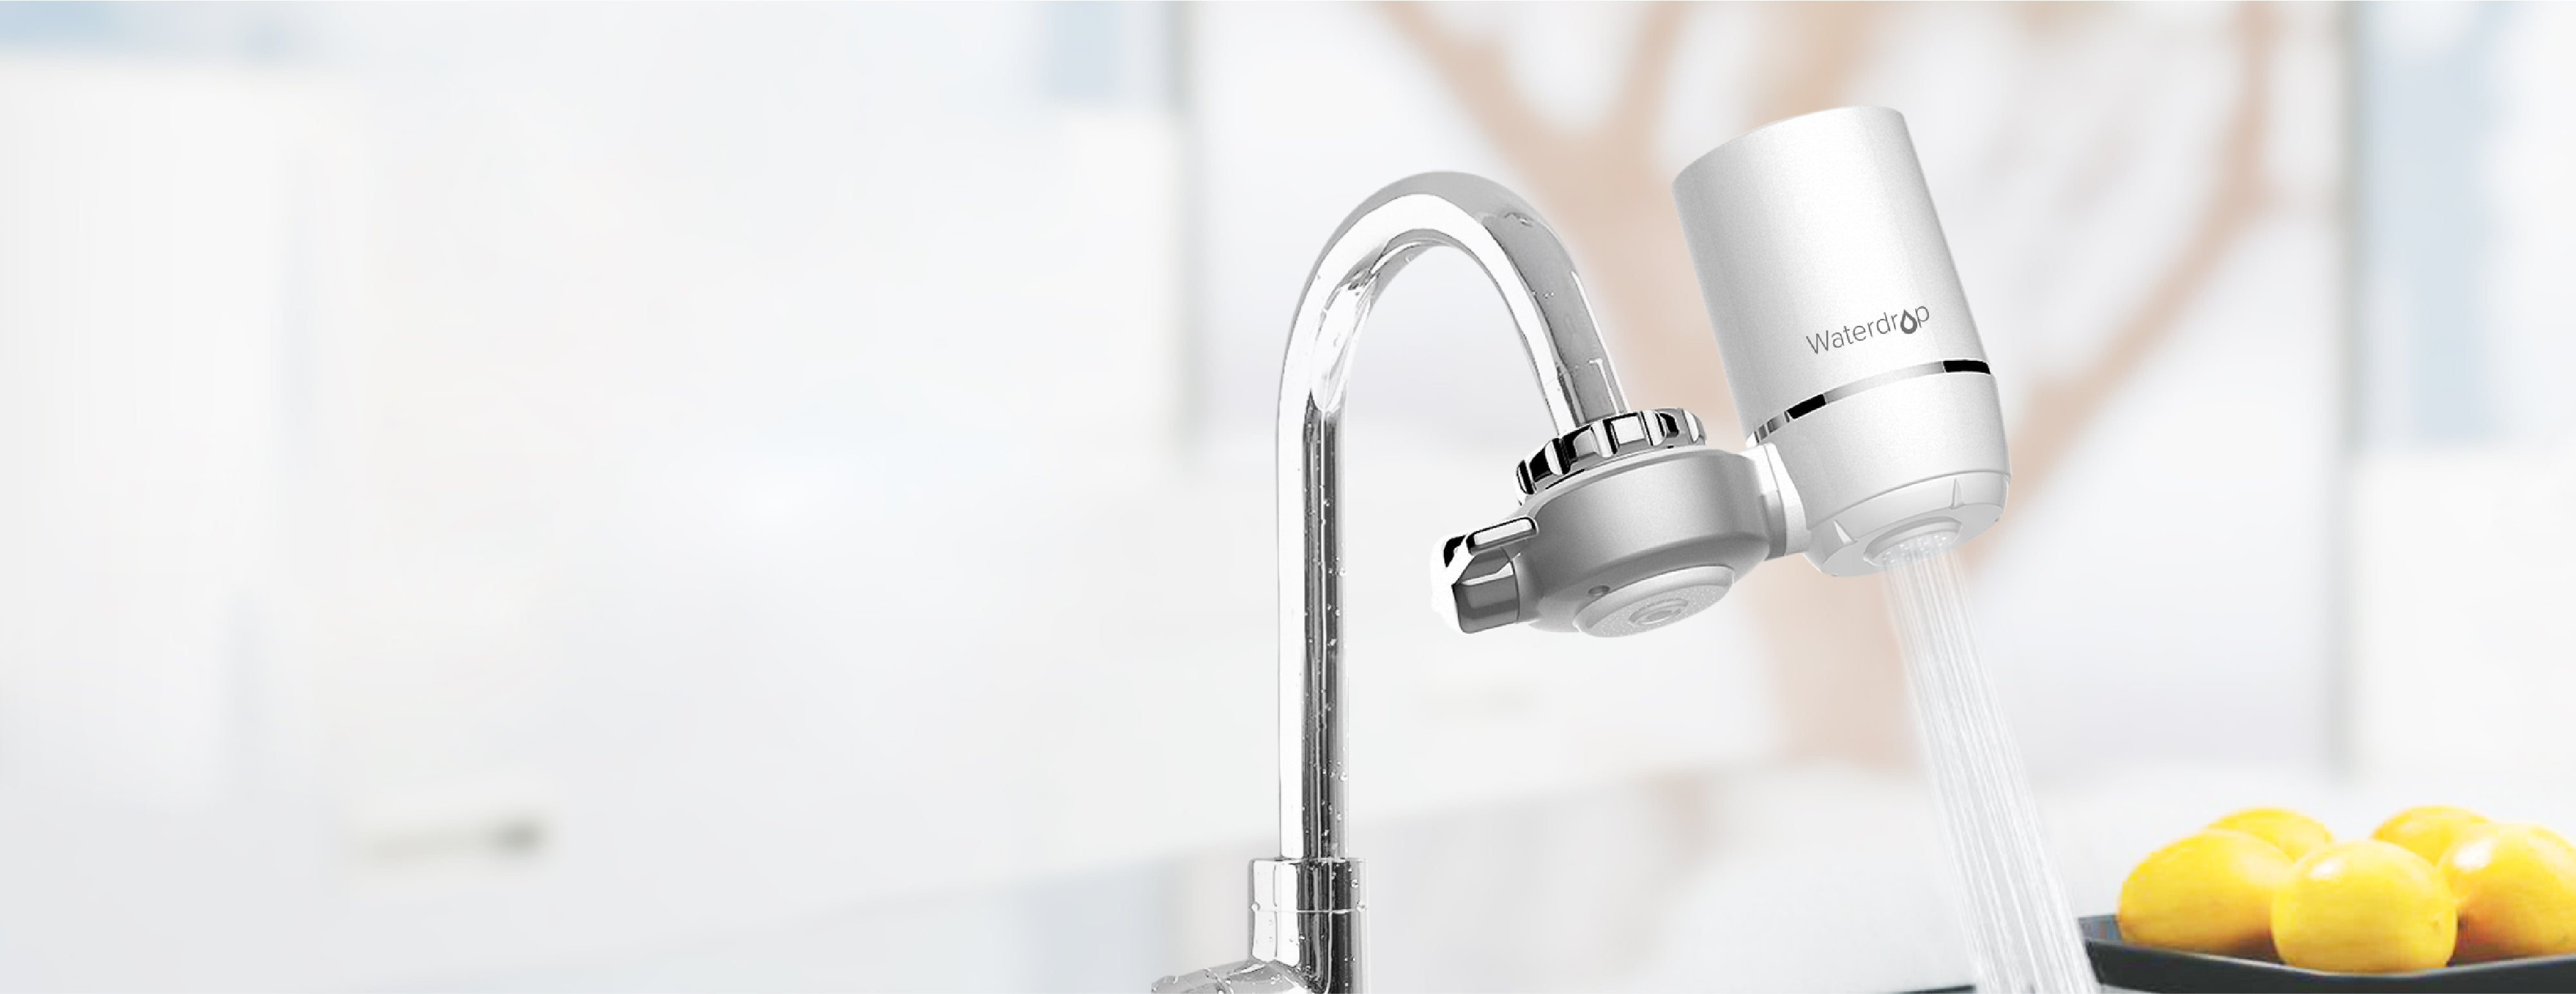 A water faucet filter